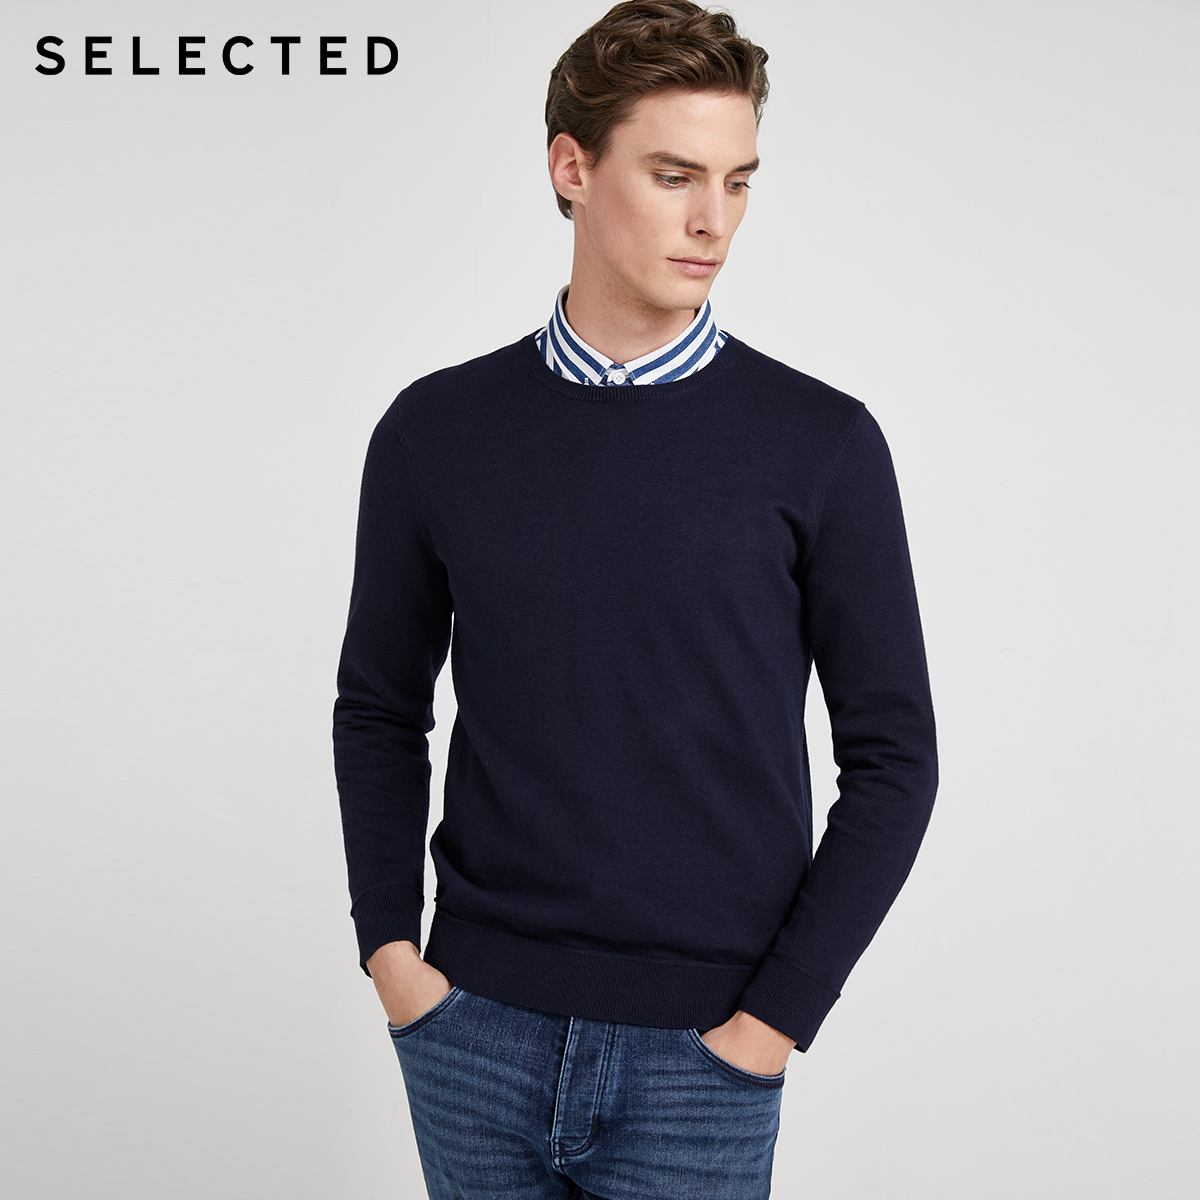 SELECTED Men's Cotton Round Neckline Long-sleeved Knit R|420124525